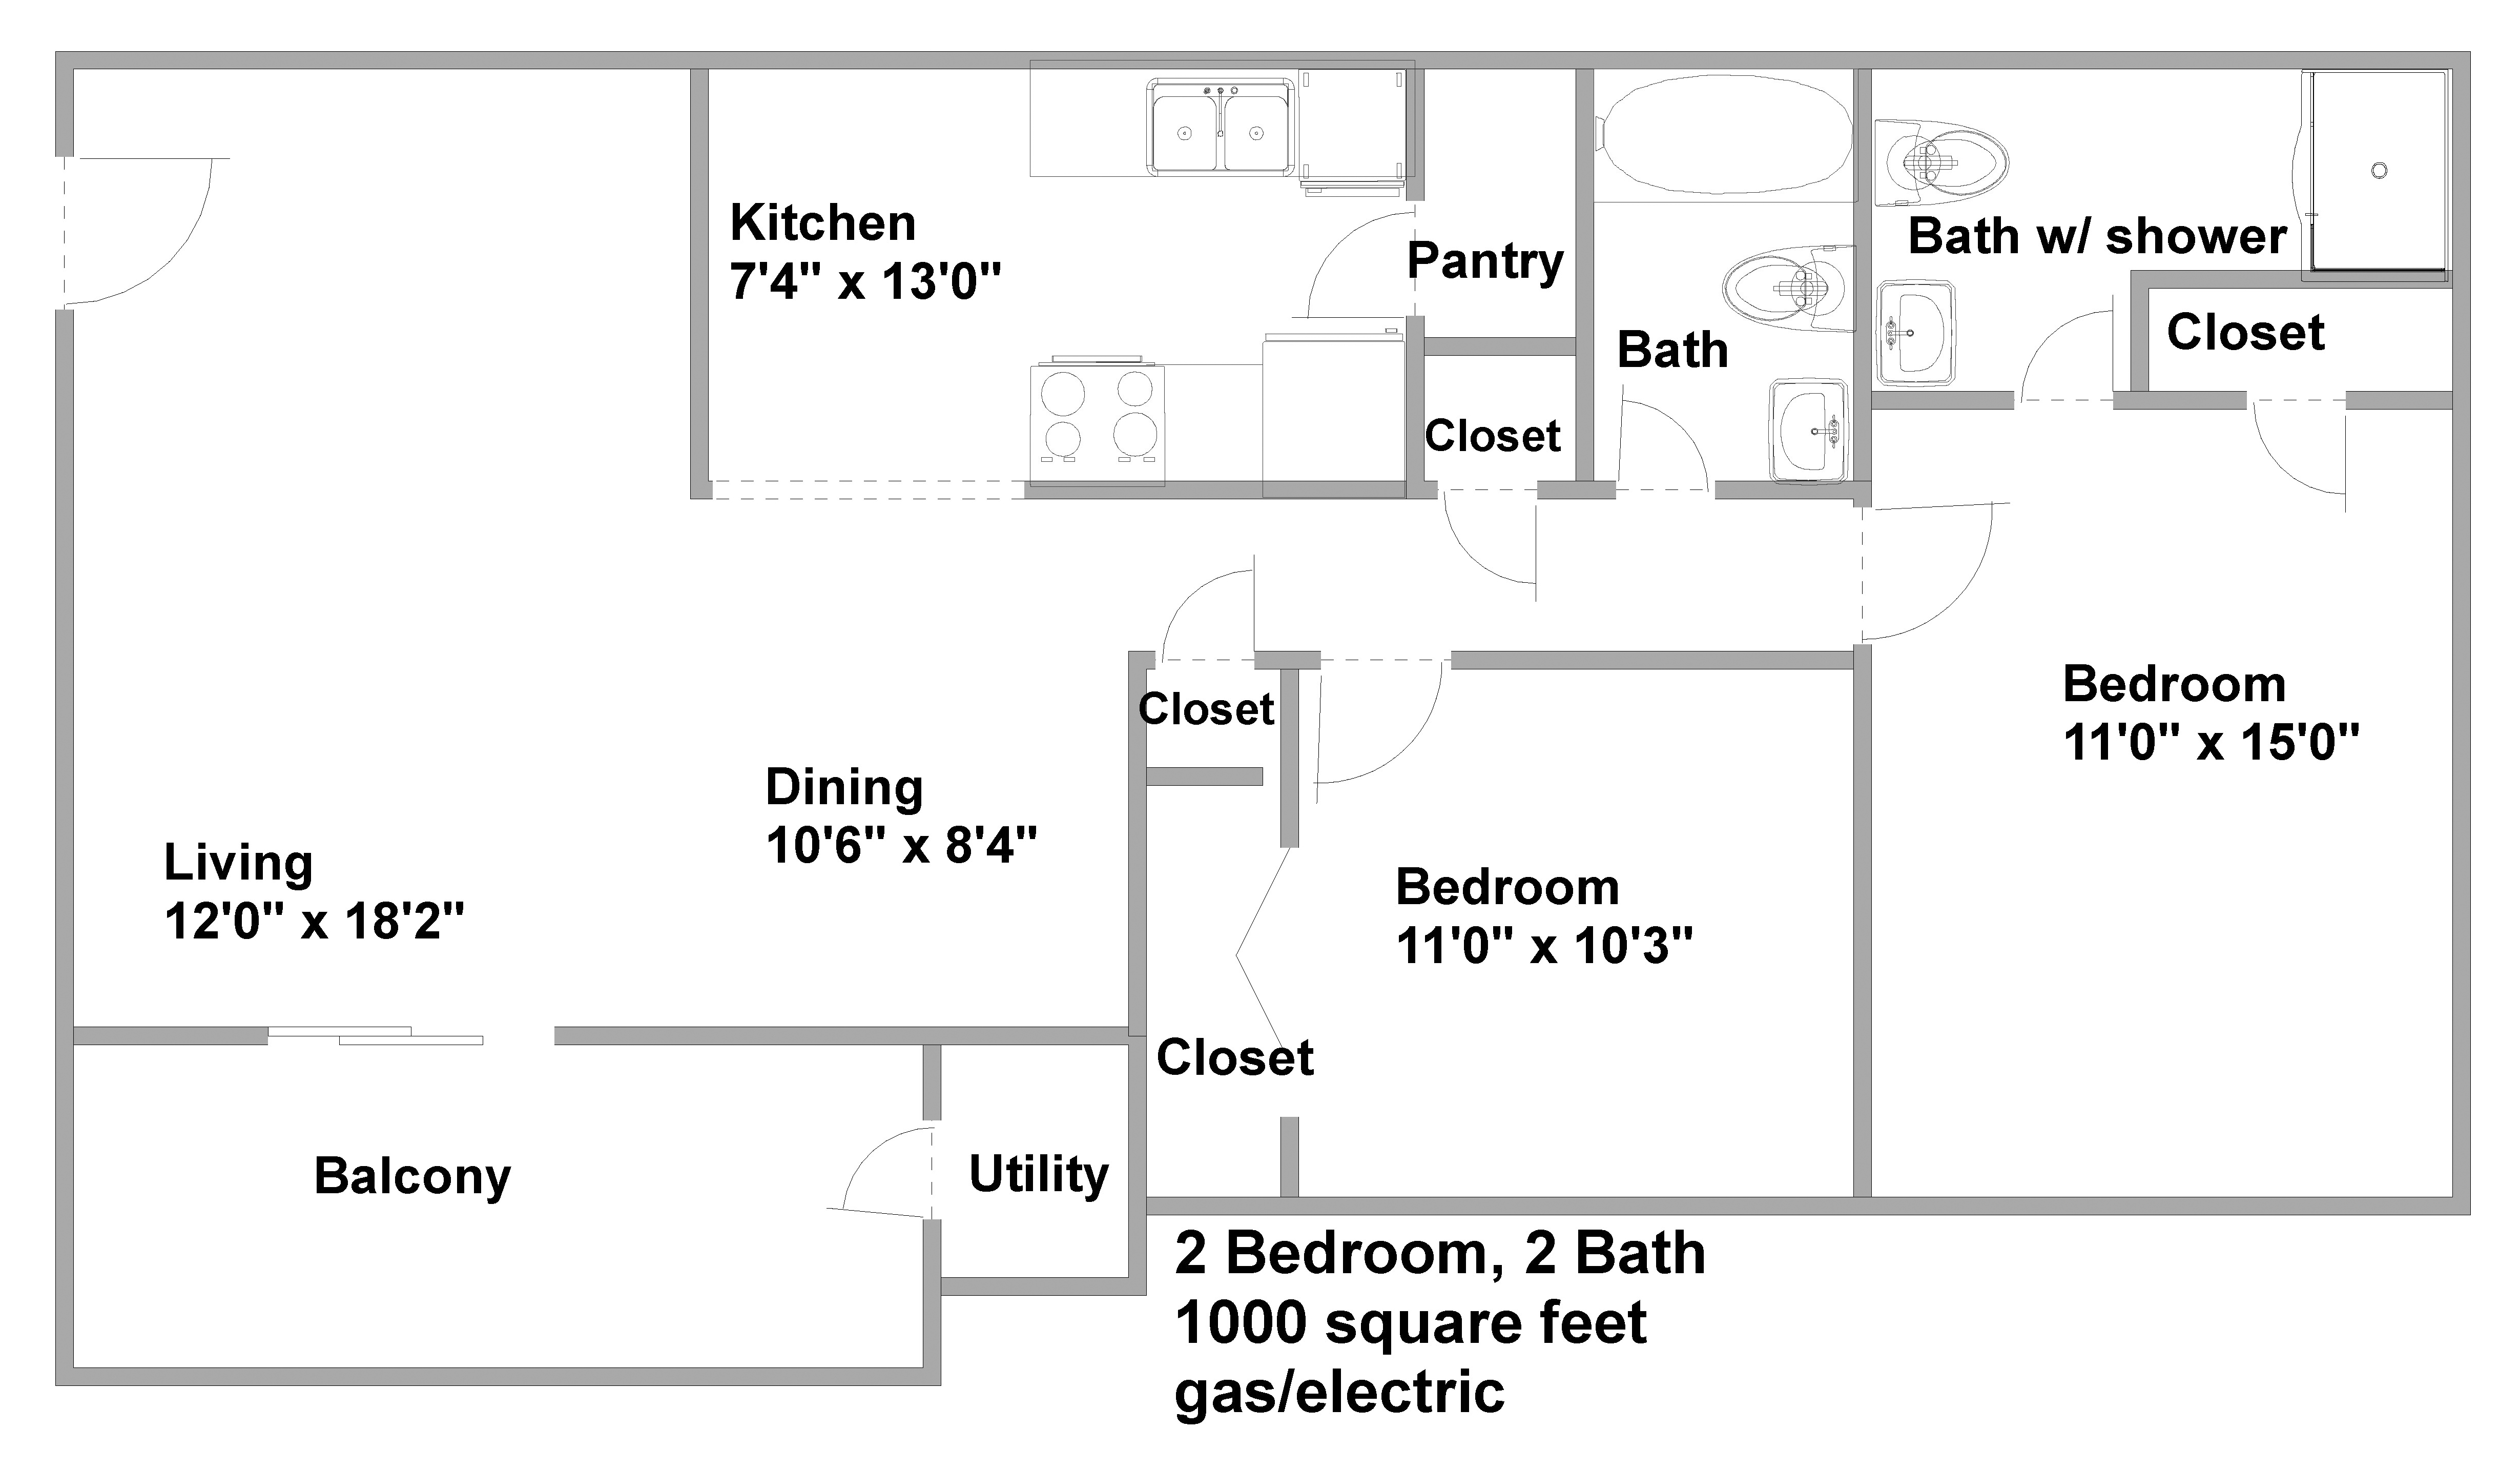 1000 square foot 1 bedroom 1000 square foot apartment for 1000 sq ft floor plan